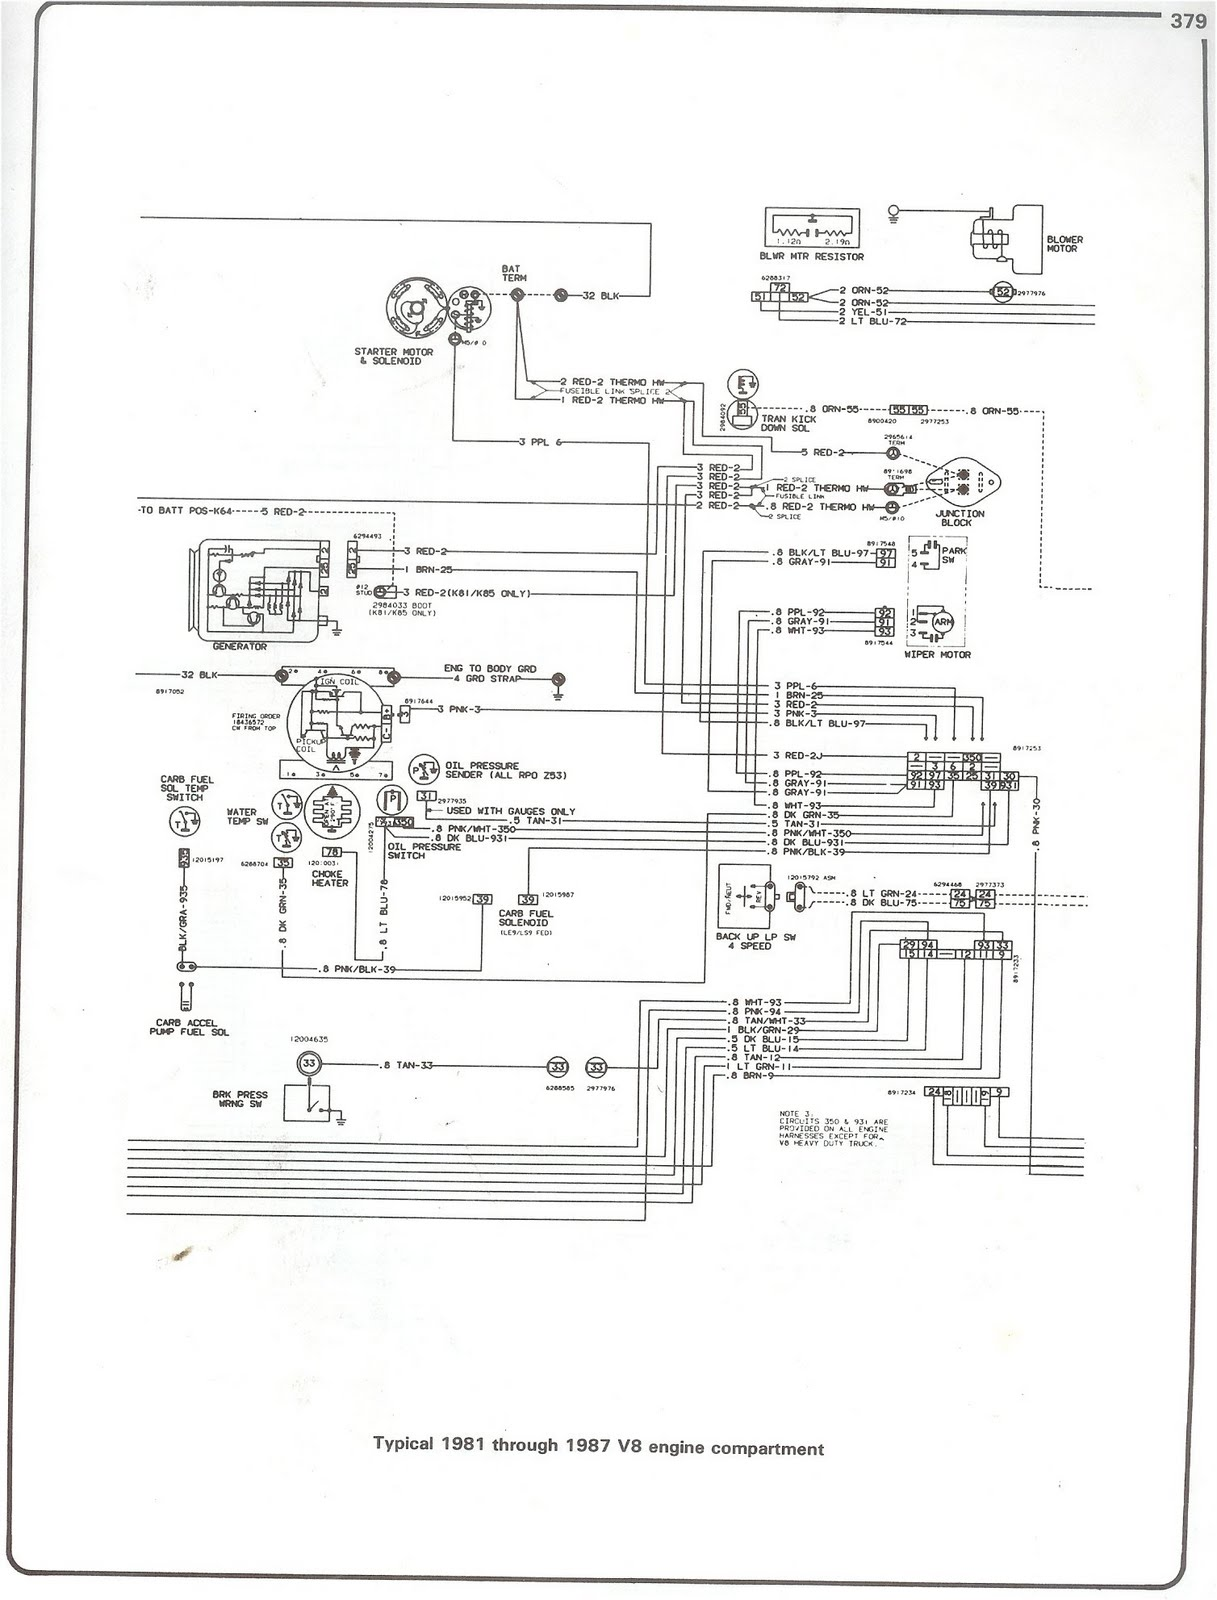 medium resolution of 1978 chevy truck wiring harness data diagram schematic 1978 chevy truck wiring harness